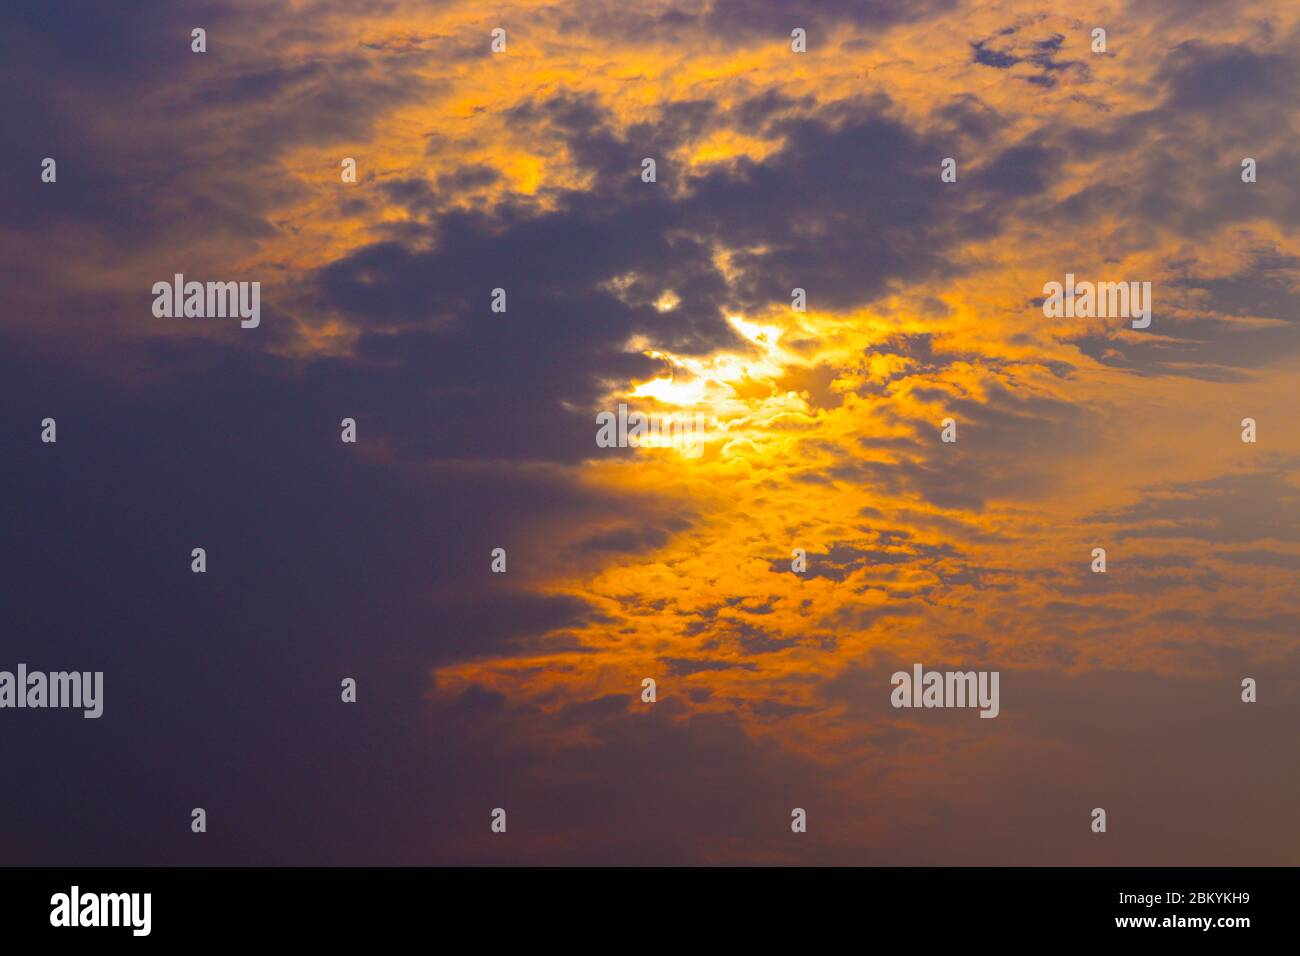 The Beautiful Sun Above Clouds With Dramatic Light Sunset Sunrise With Sun Rays Stock Photo Alamy